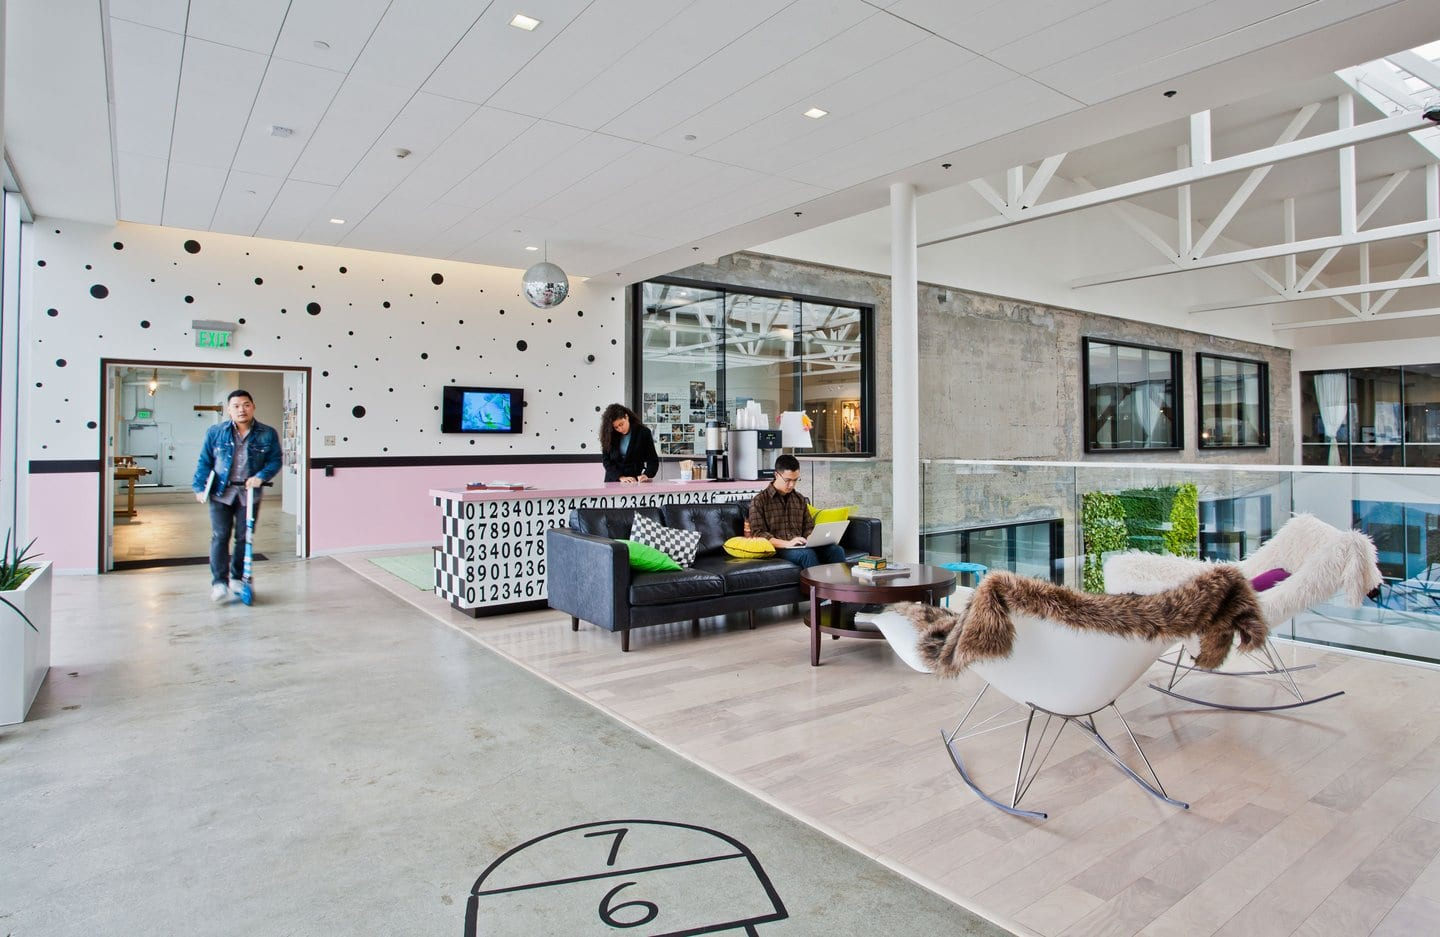 airbnb office london threefold airbnb office design san airbnb cool office design office interiors corridor meeting airbnb office